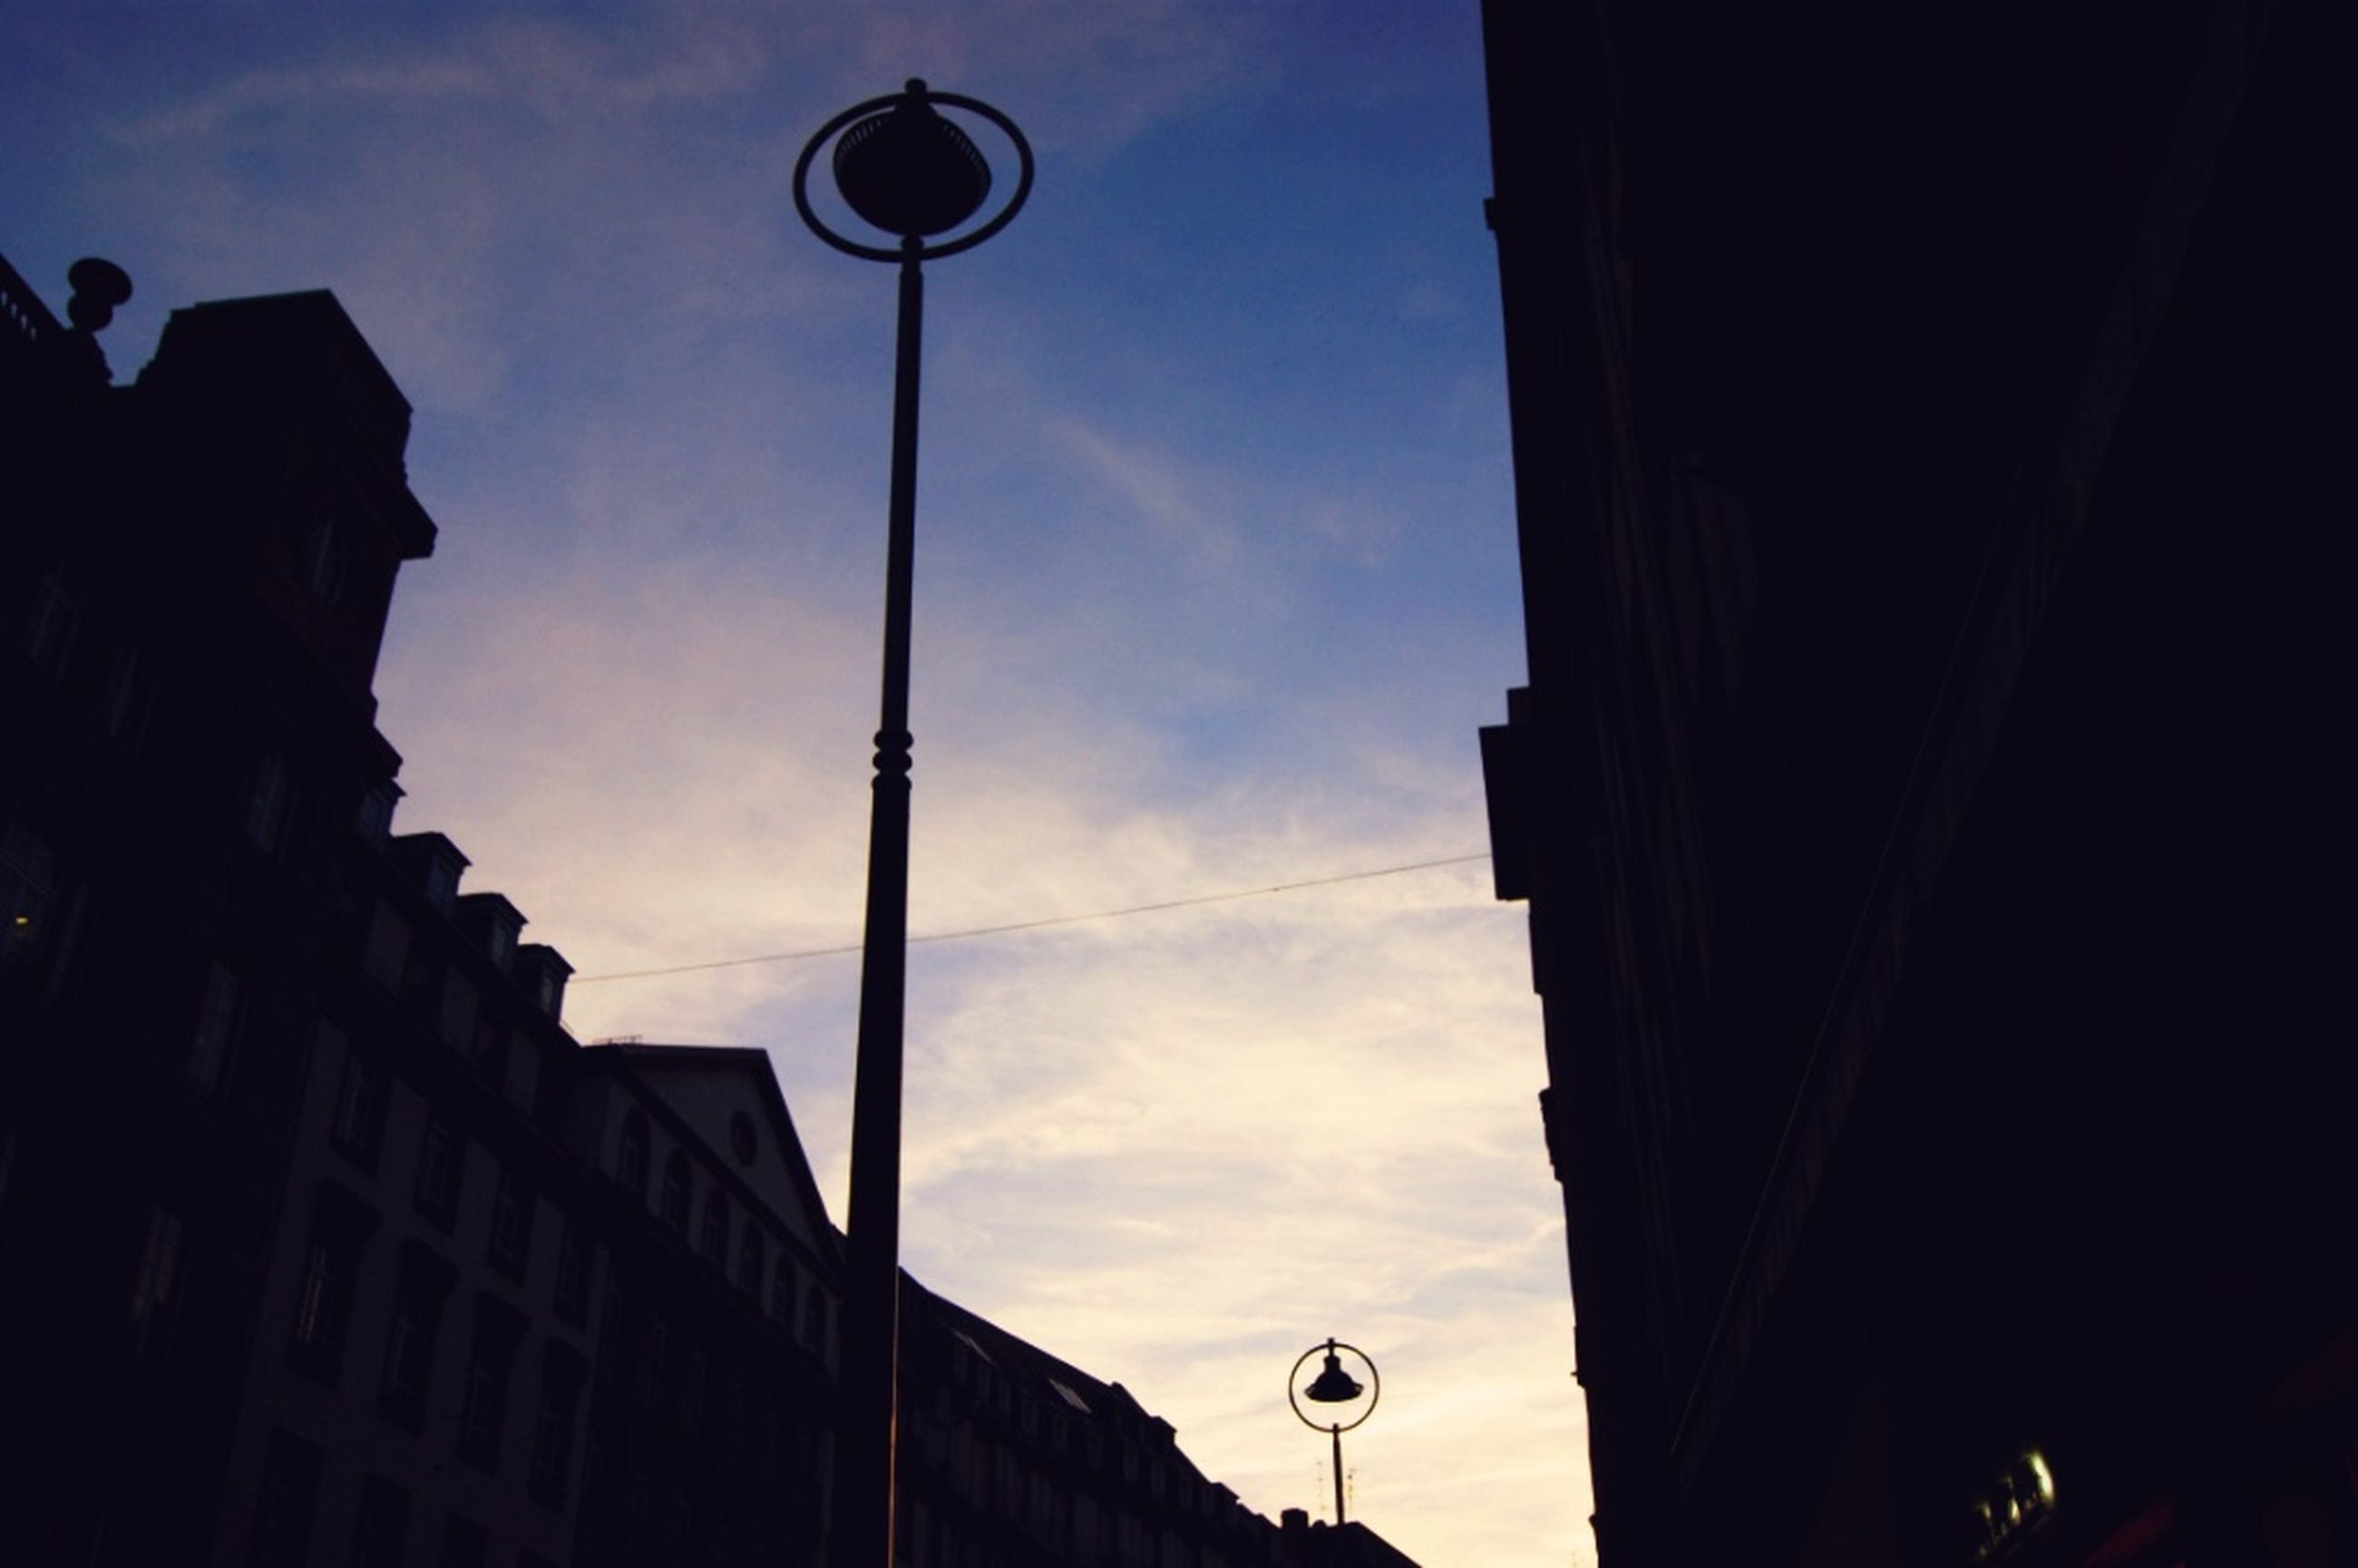 street light, low angle view, sky, building exterior, built structure, architecture, lighting equipment, silhouette, cloud - sky, cloud, pole, dusk, lamp post, building, outdoors, city, no people, electric light, electricity, cloudy